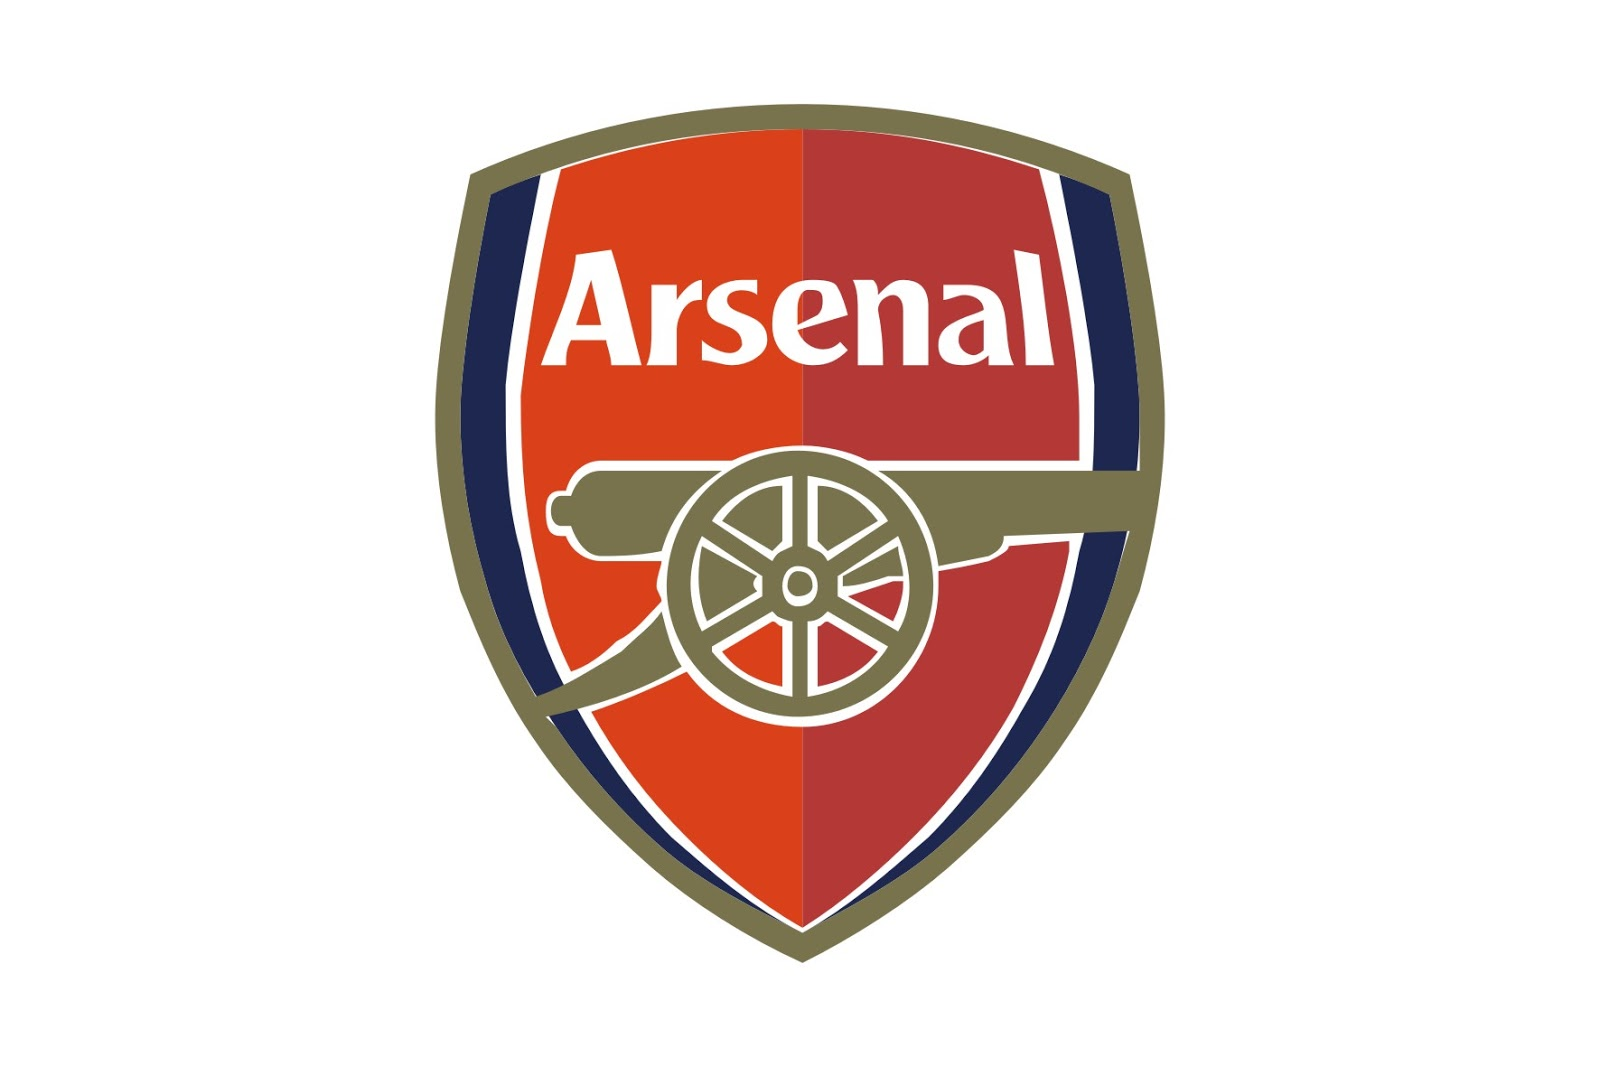 Arsenal 3d clipart.